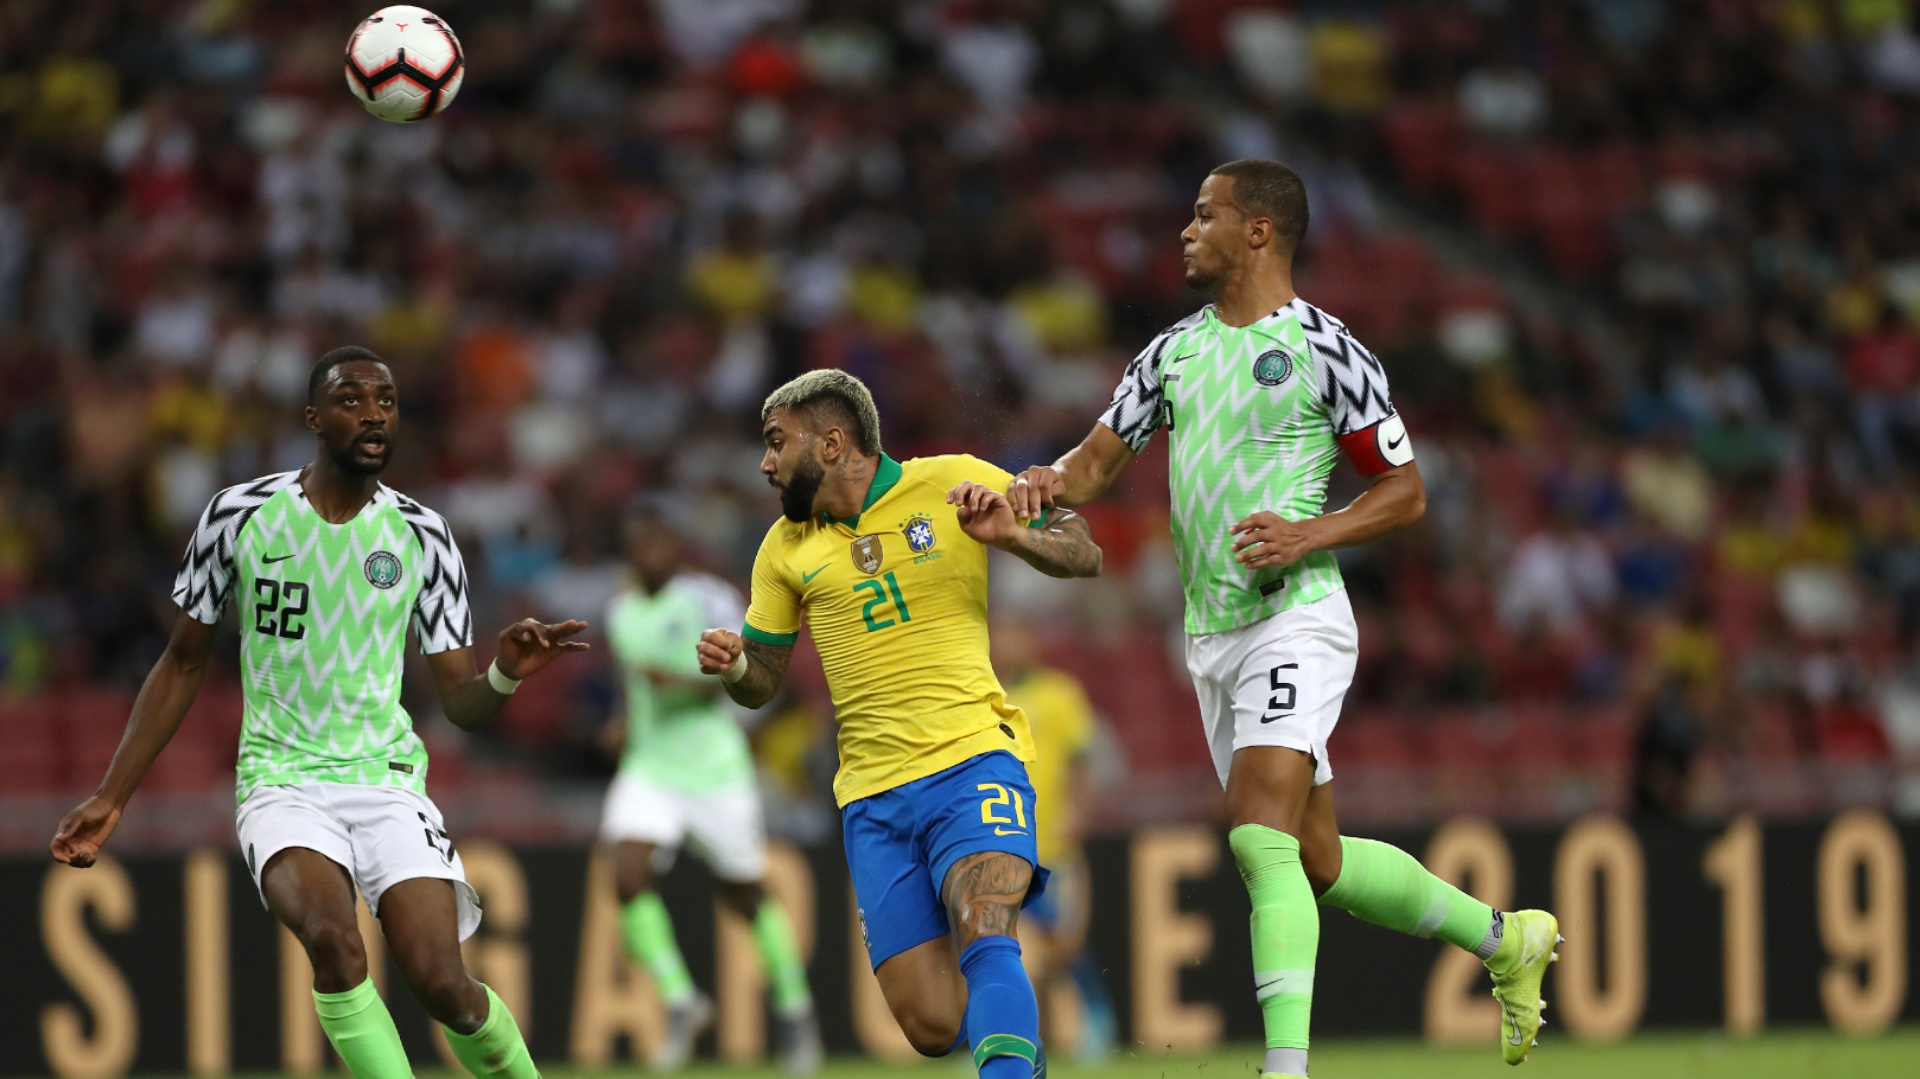 Afcon 2021 qualifiers Wednesday wrap: Nigeria, Senegal win as Cameroon held at home